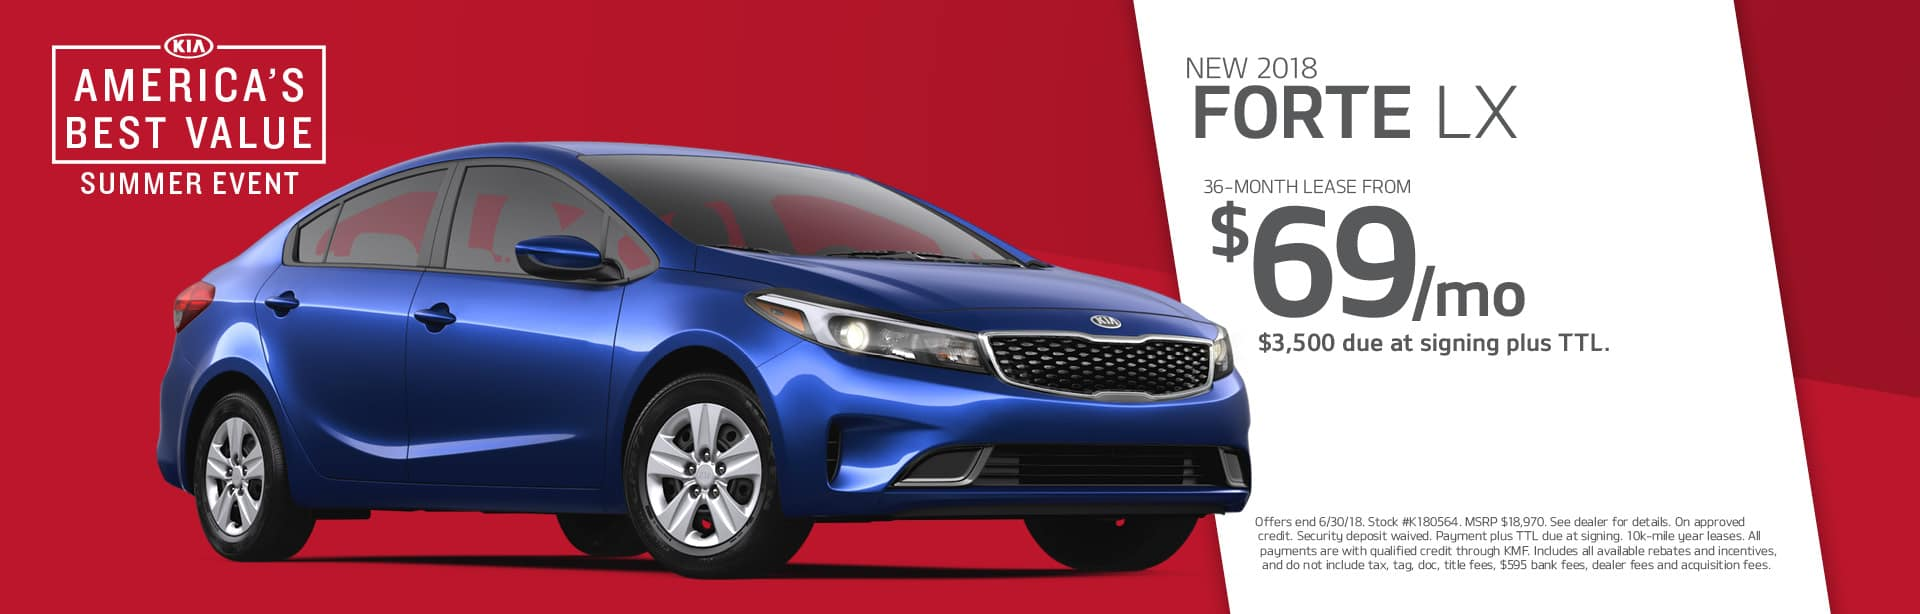 york states dealers ct jersey soul new maryland more now connecticut in kia ev available